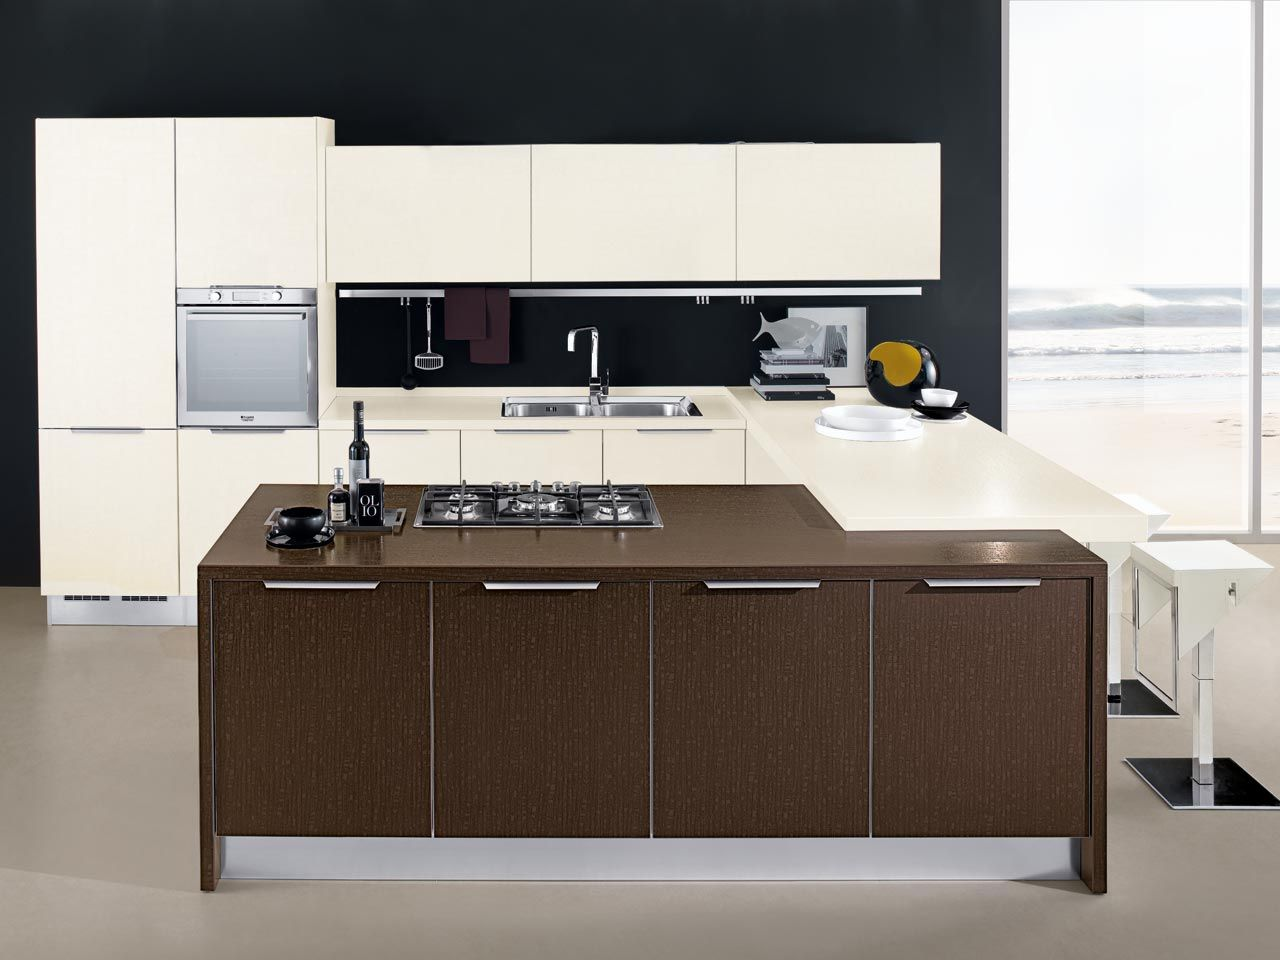 NILDE Gres - Cucina Lube Moderna | Kitchens and Modern